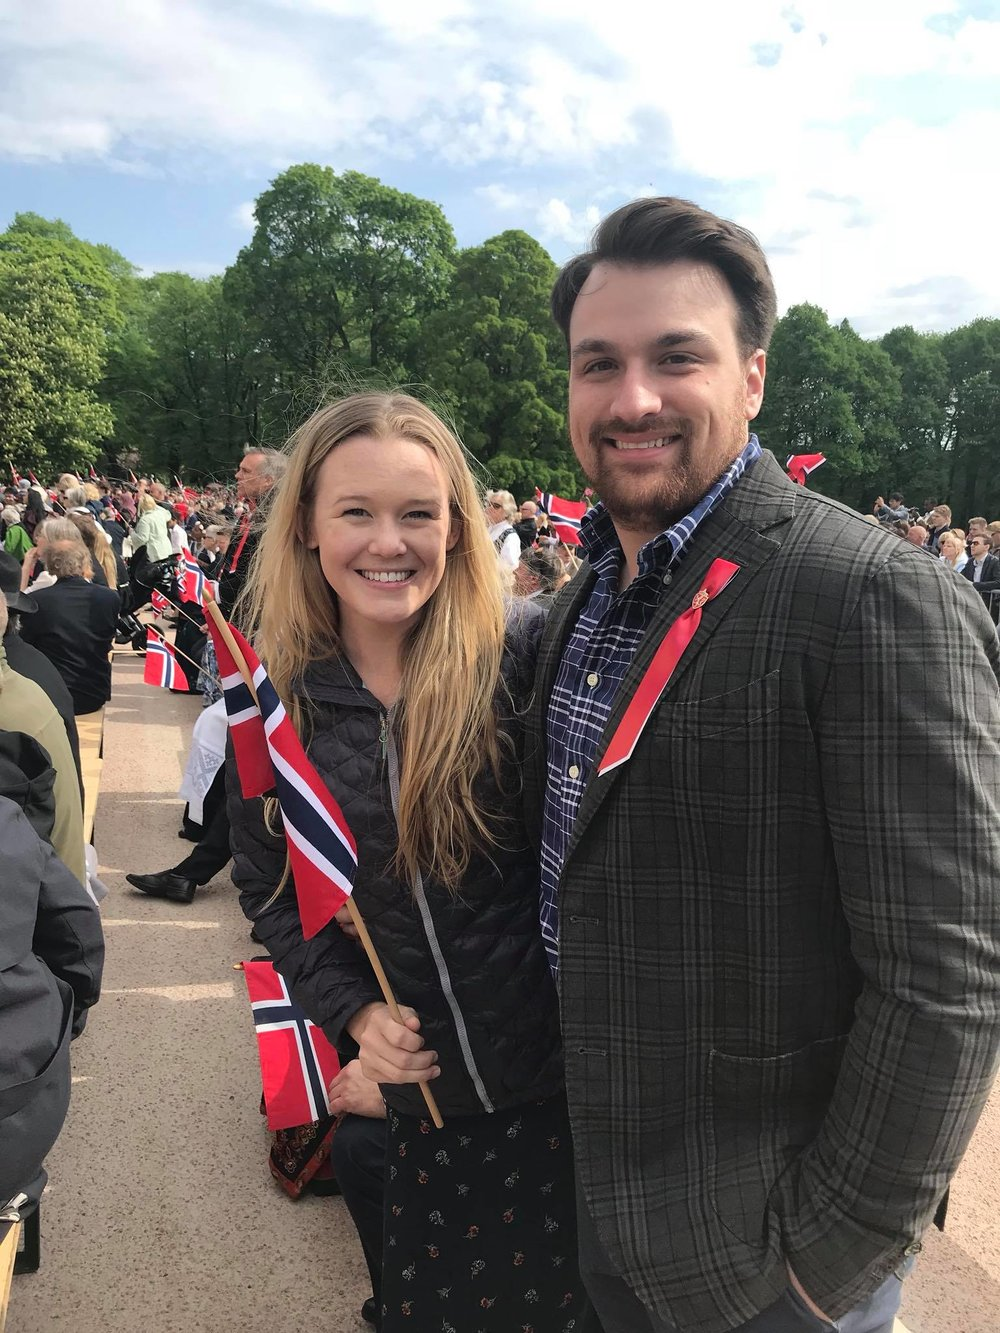 Michael celebrating Syttende Mai (17th of May) with the Norwegians! This is Norway's Constitution Day